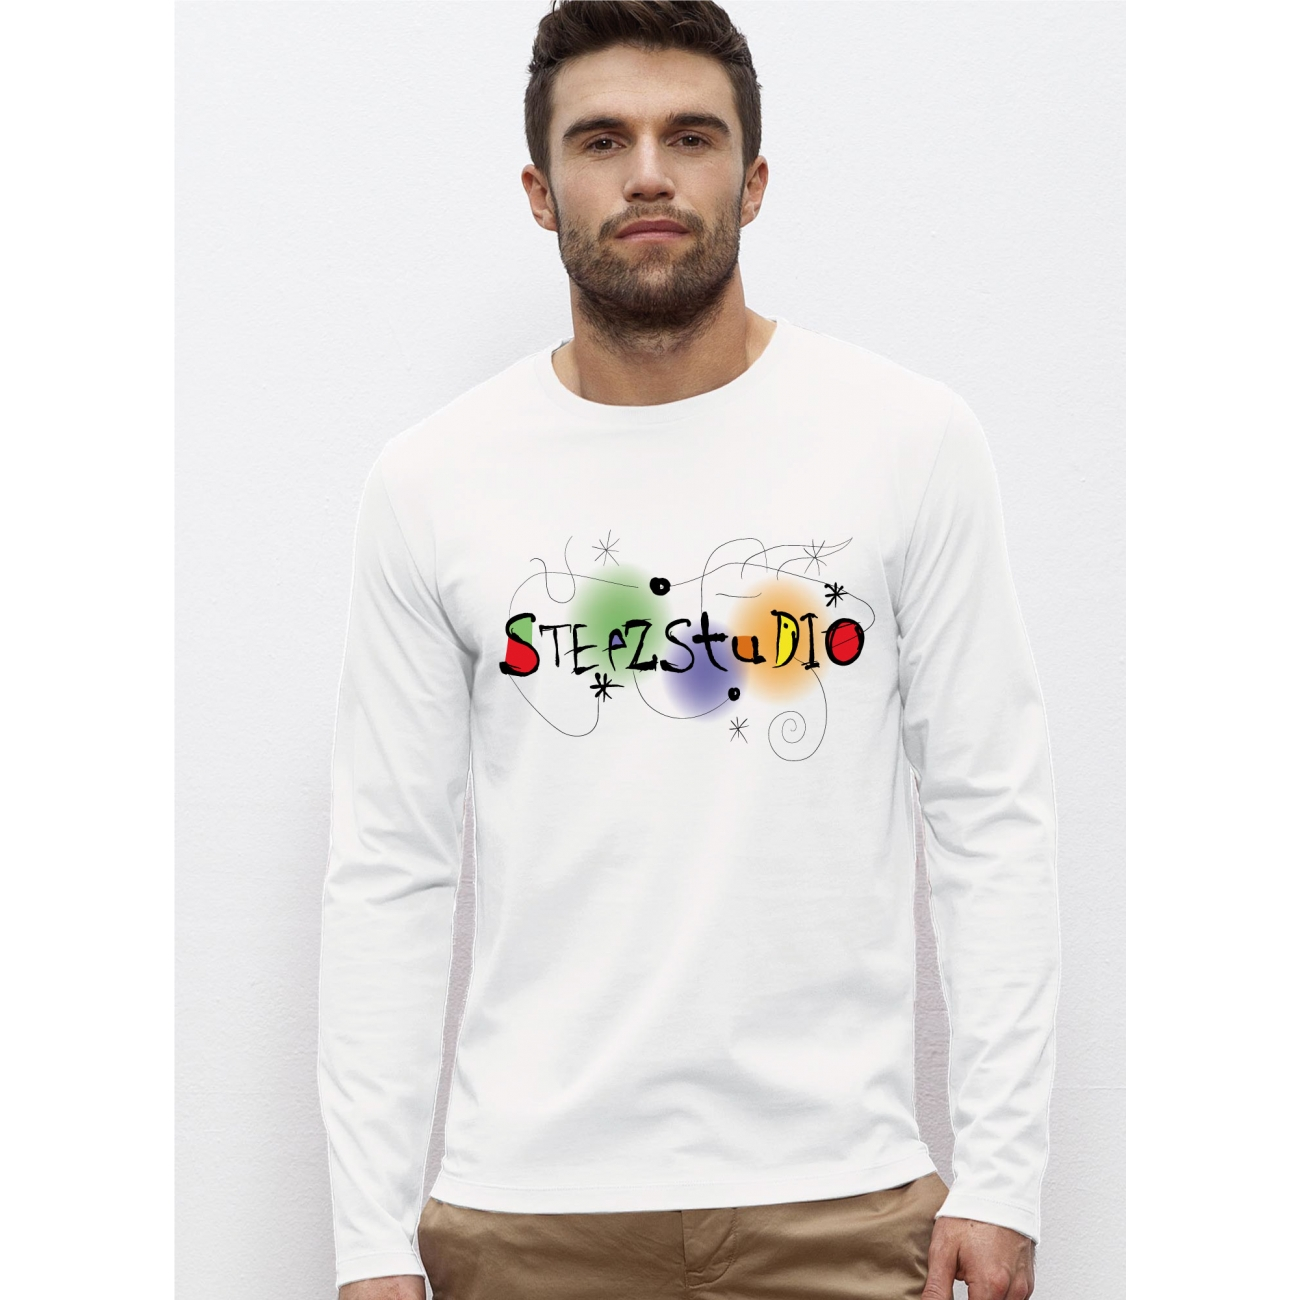 https://tee-shirt-bio.com/2819-thickbox_default/tee-shirt-homme-manches-longues-100-coton-bio-doux-equitable-blanc-imprime-numerique-steez-by-barcelone-.jpg